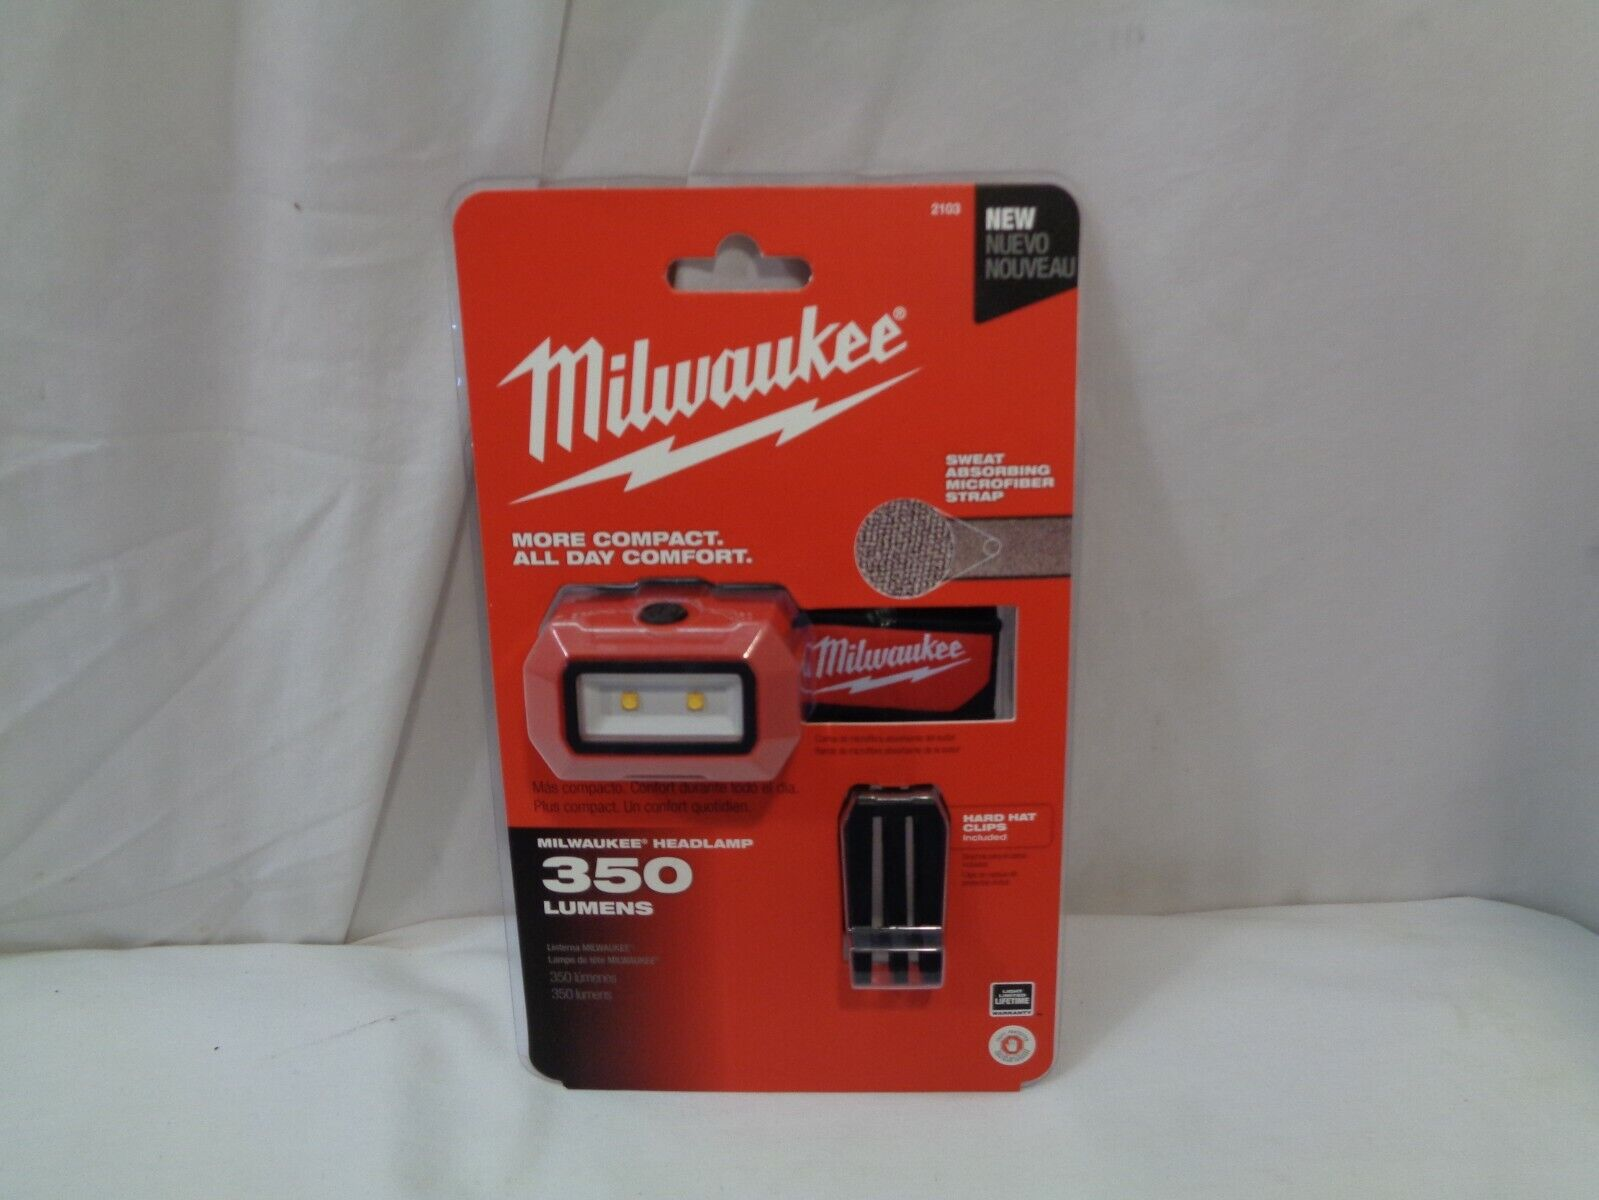 MILWAUKEE 2103 LED HEADLAMP WATER DUST RESISTANT BRAND NEW  - $25.00